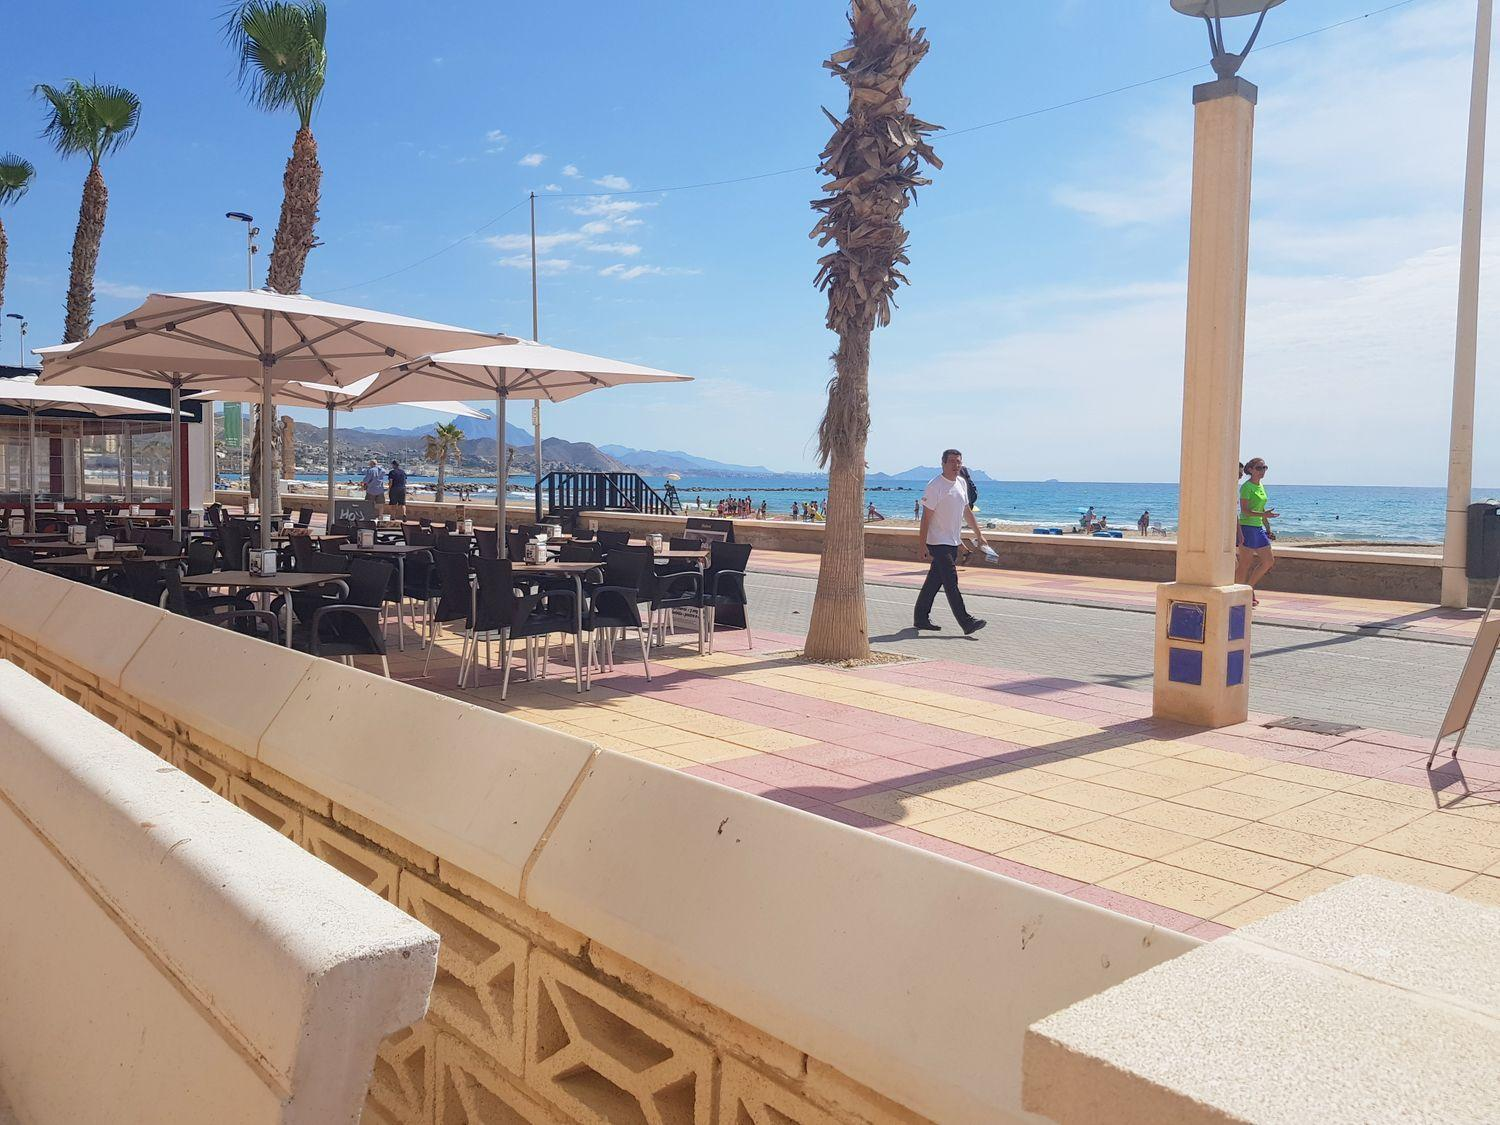 Local Comercial en  El Campello, Alicante Provincia